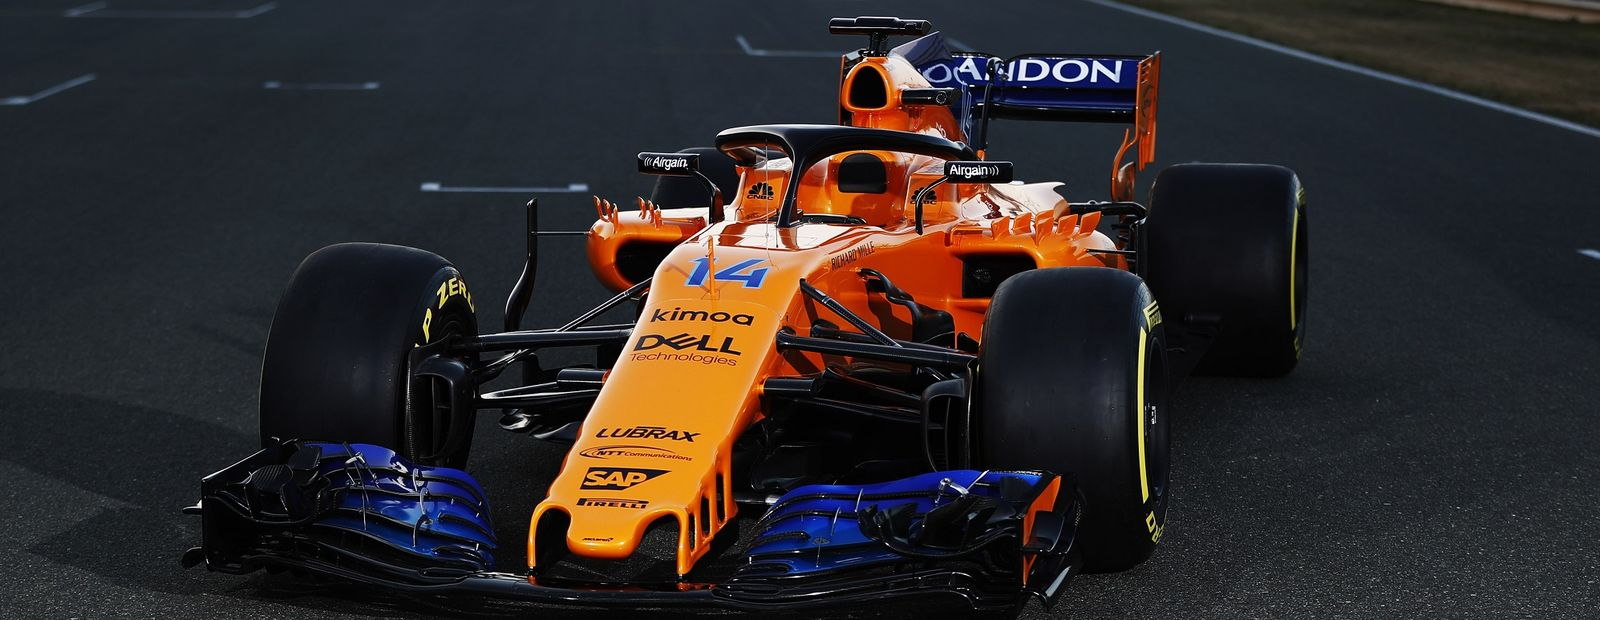 McLaren MCL33 Technical Specification